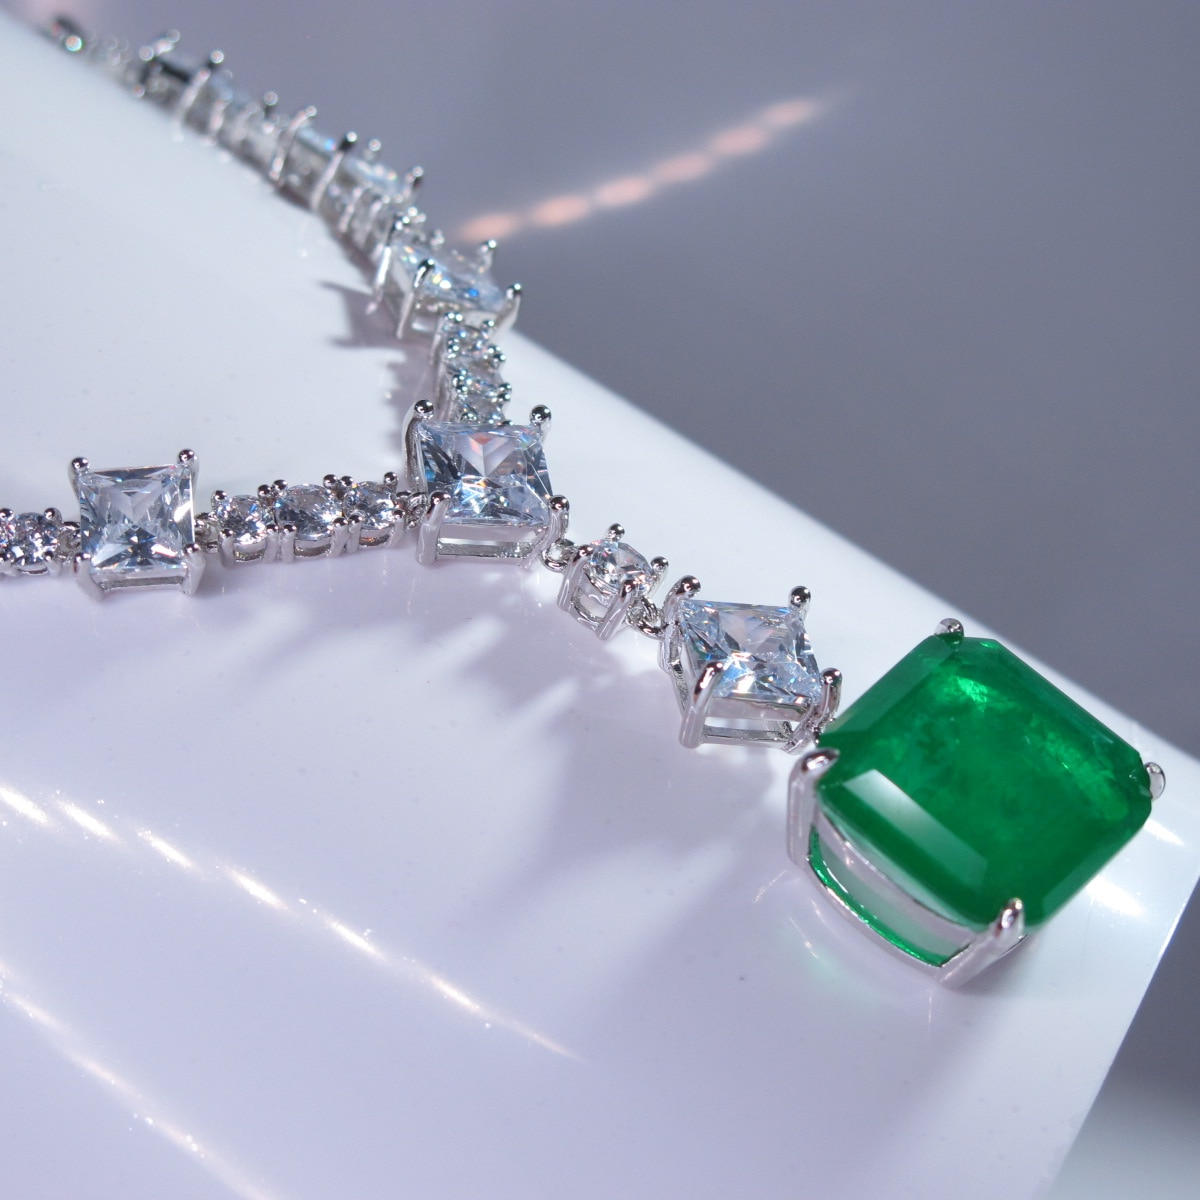 Woman 15*15mm Simulated Emerald Gemstones Diamond Pendants Necklaces Tennis Chain White Gold plated Wedding Jewelry 2021 Trend